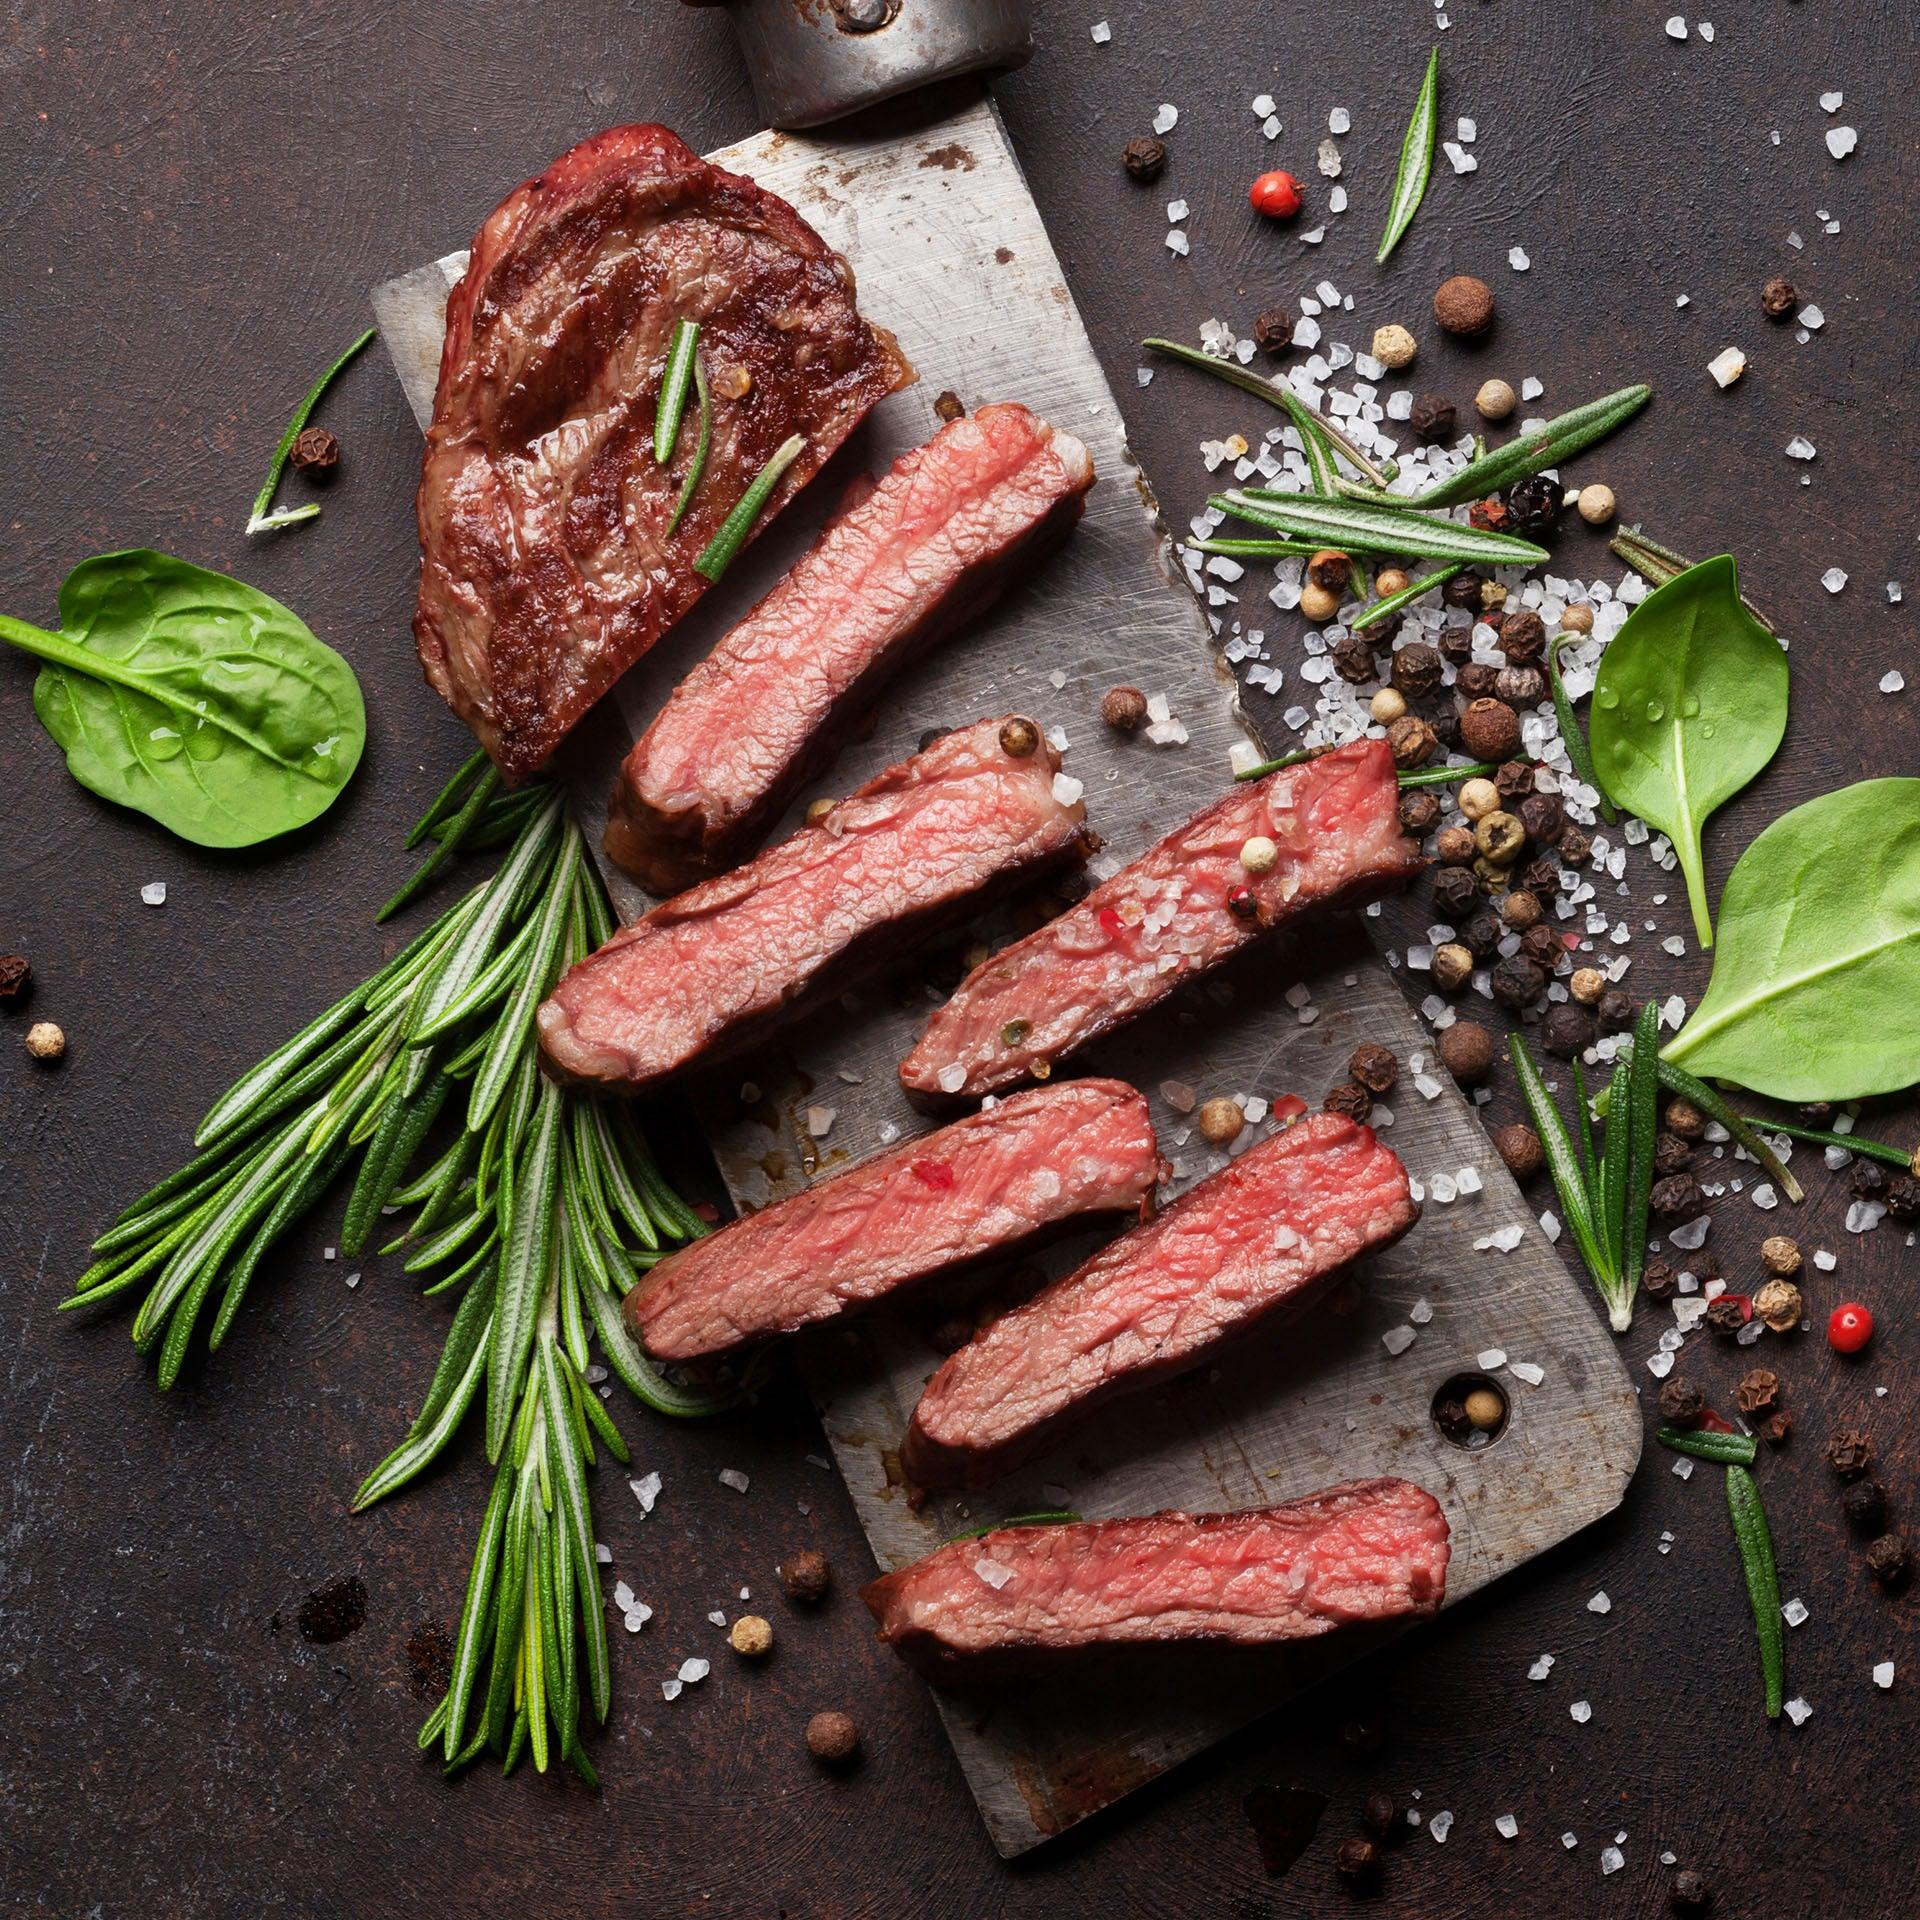 Grass-Fed Beef Lean Premium Steaks - $119 for 12 Steaks Free Shipping